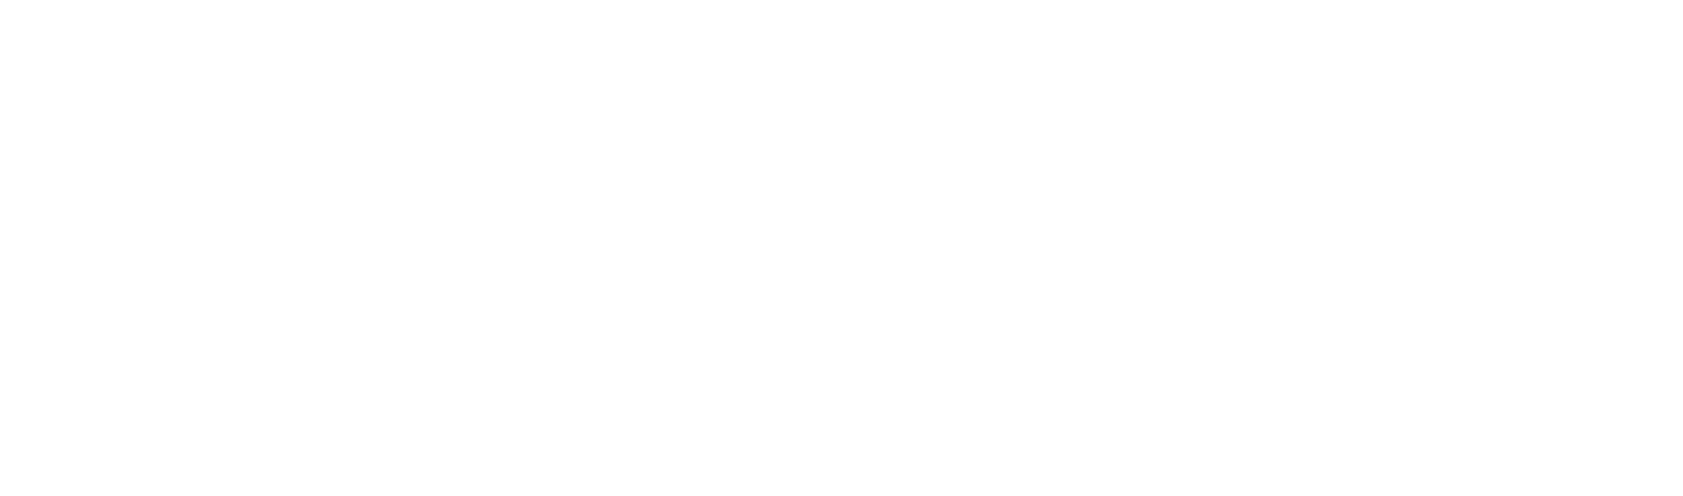 The College of Charleston Computer Science Logo